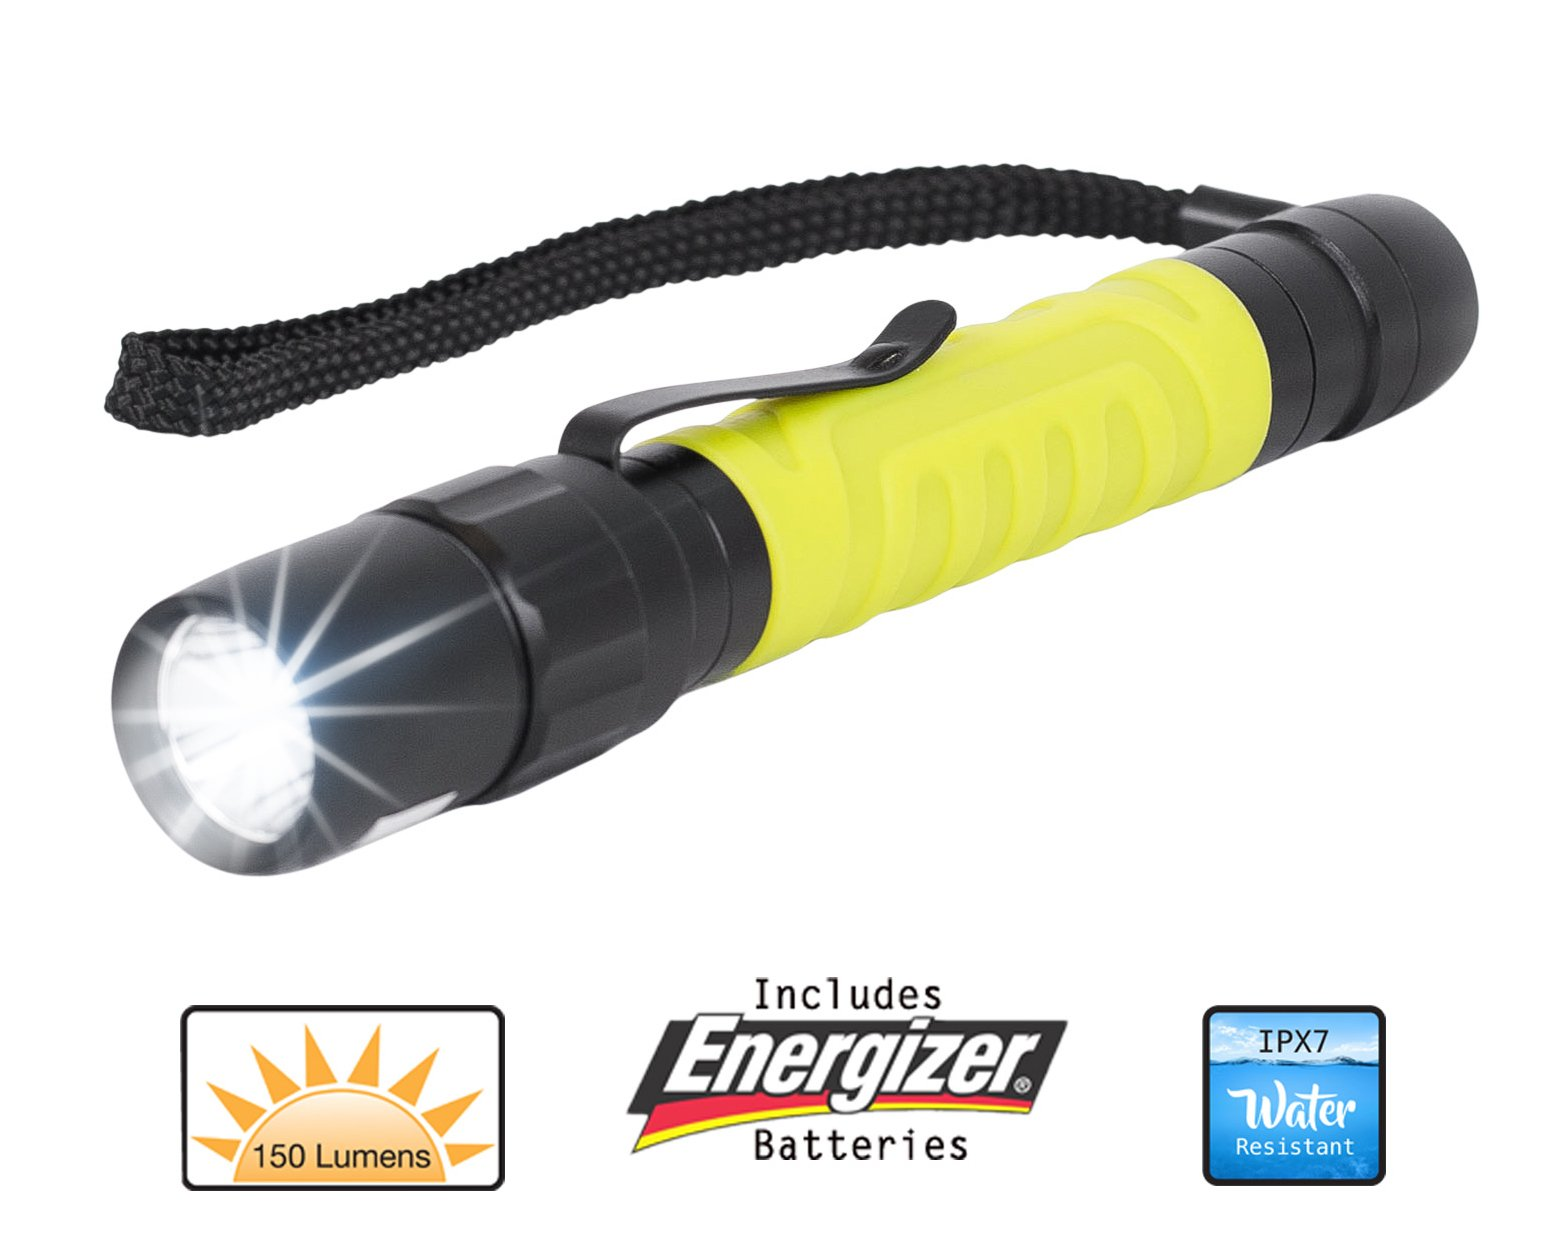 Internet's Best LED Pocket Flashlight with Clip | Includes 2 AA Energizer Batteries | Neon Yellow| Rubber Grip | Water Resistant | 150 Lumens